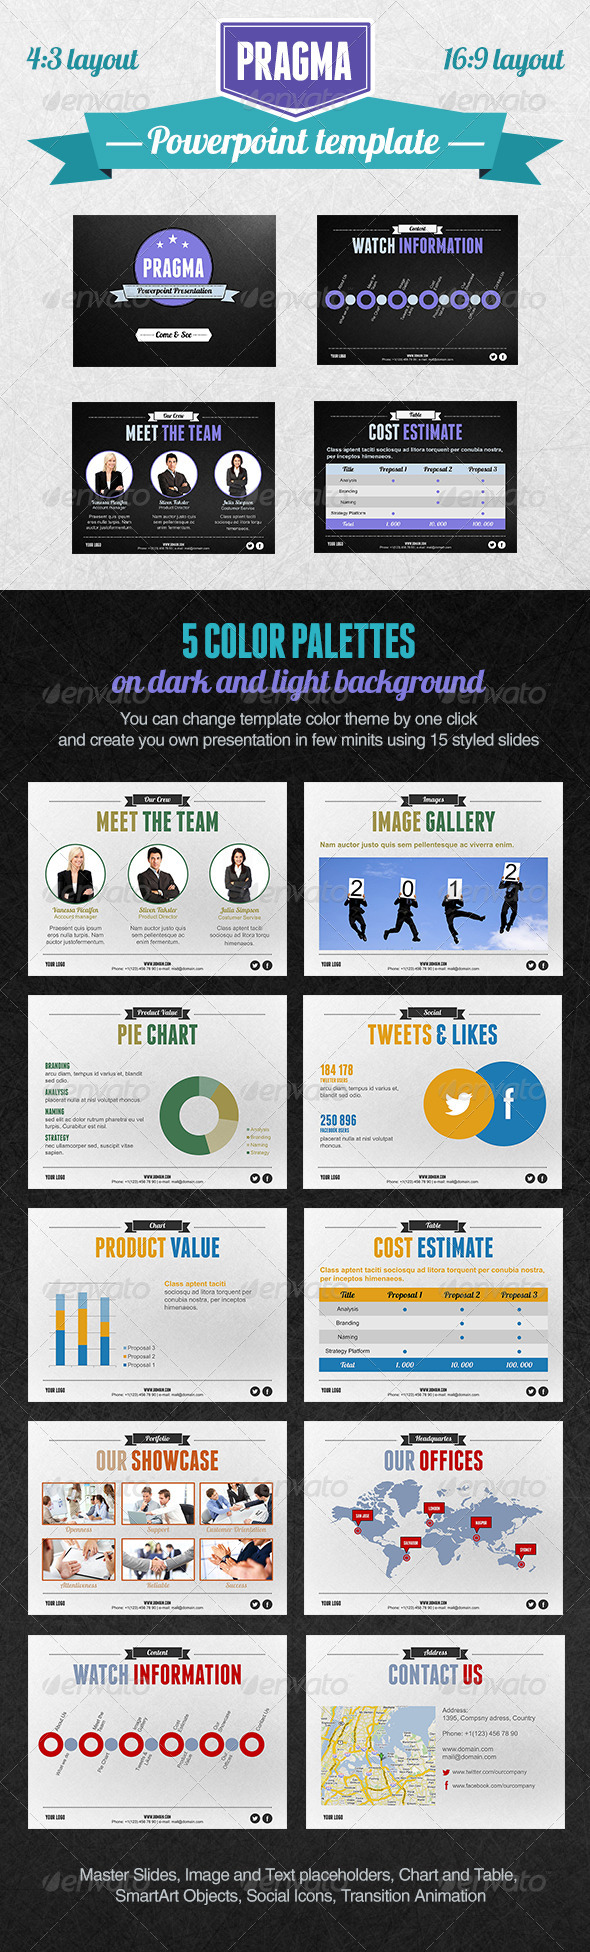 Pragma PowerPoint Presentation Template - Powerpoint Templates Presentation Templates